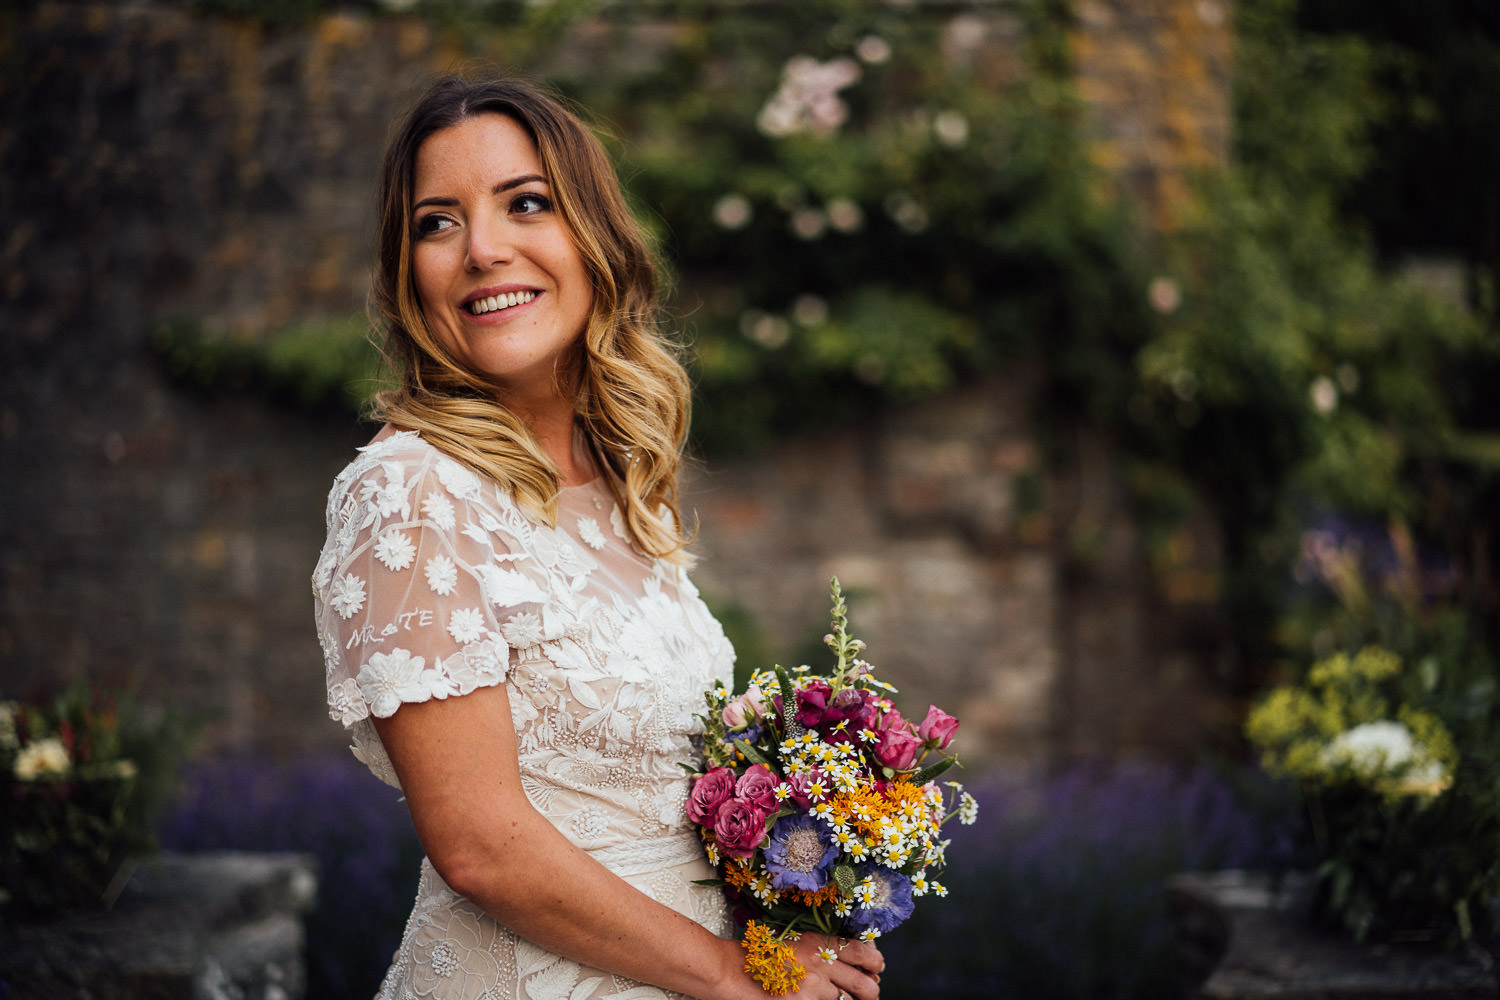 Bride looking in hermione de paula wedding dress in Barley Wood House Bristol Wedding by bristol wedding photographer the shannons photography